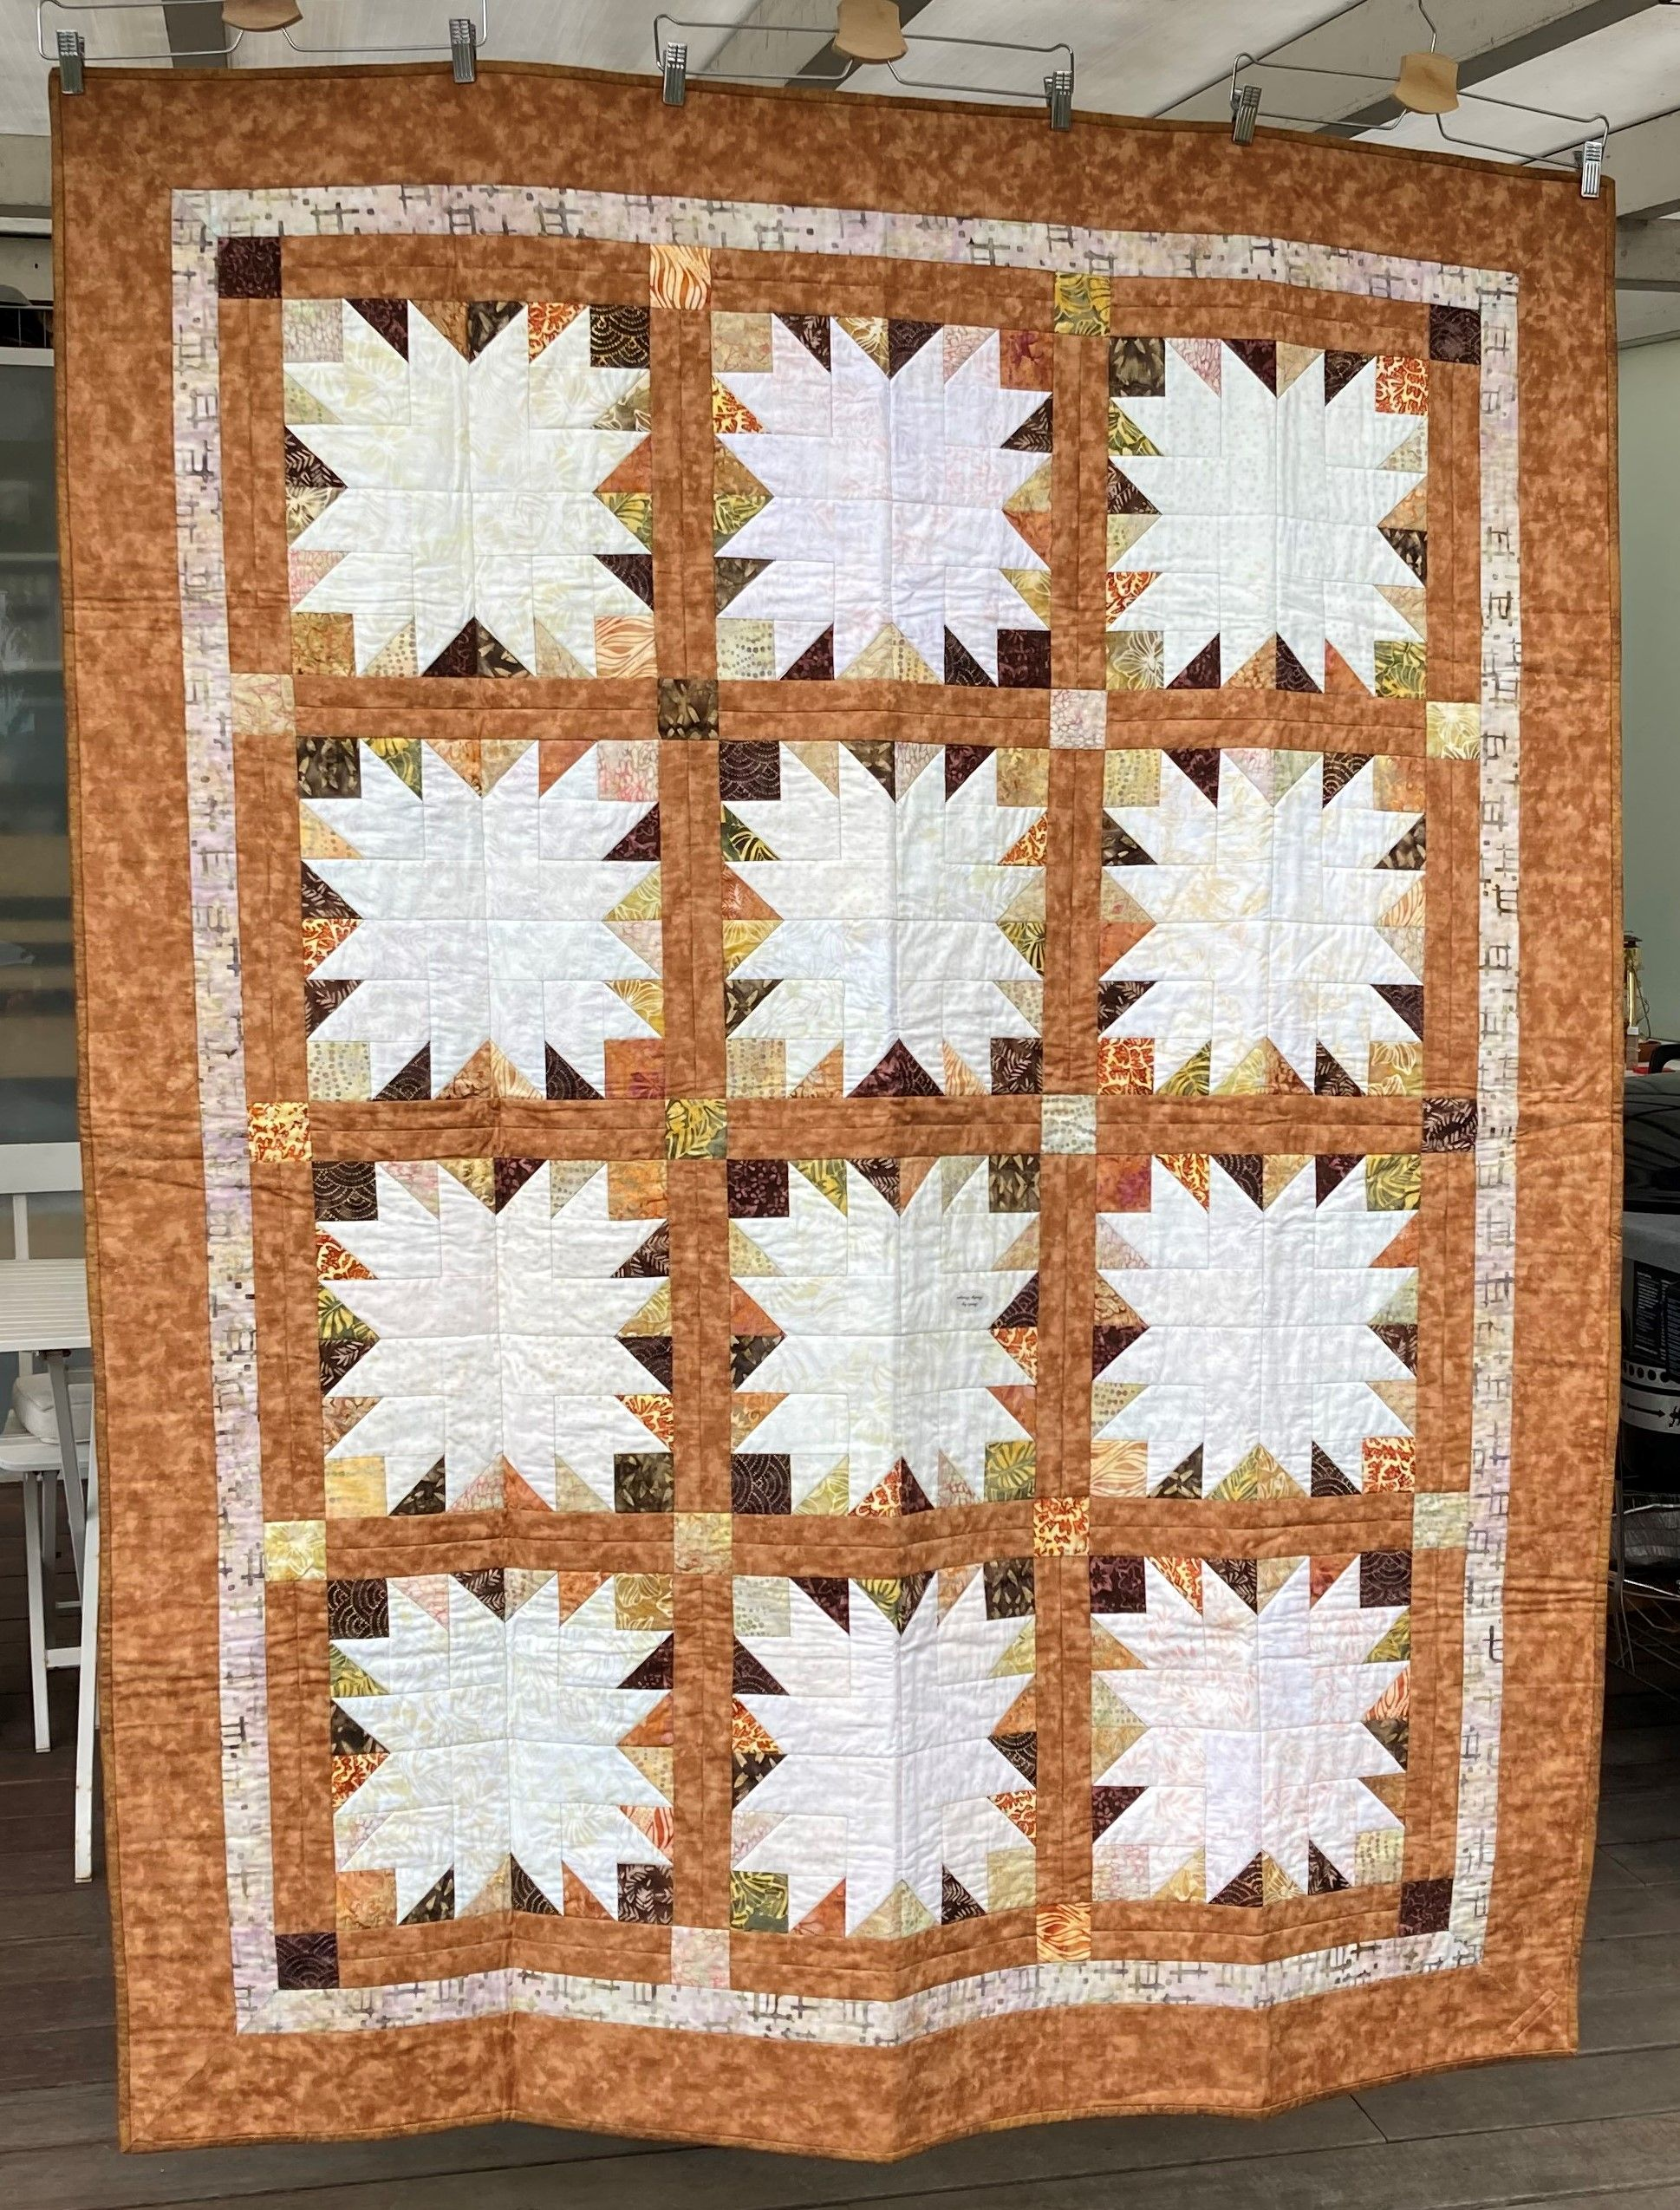 Lovely September Bliss Batik Quilt In Autumn Colors Size 54 68 Inch 137 173 Cm In 2020 Batik Quilts Quilts For Sale Quilts